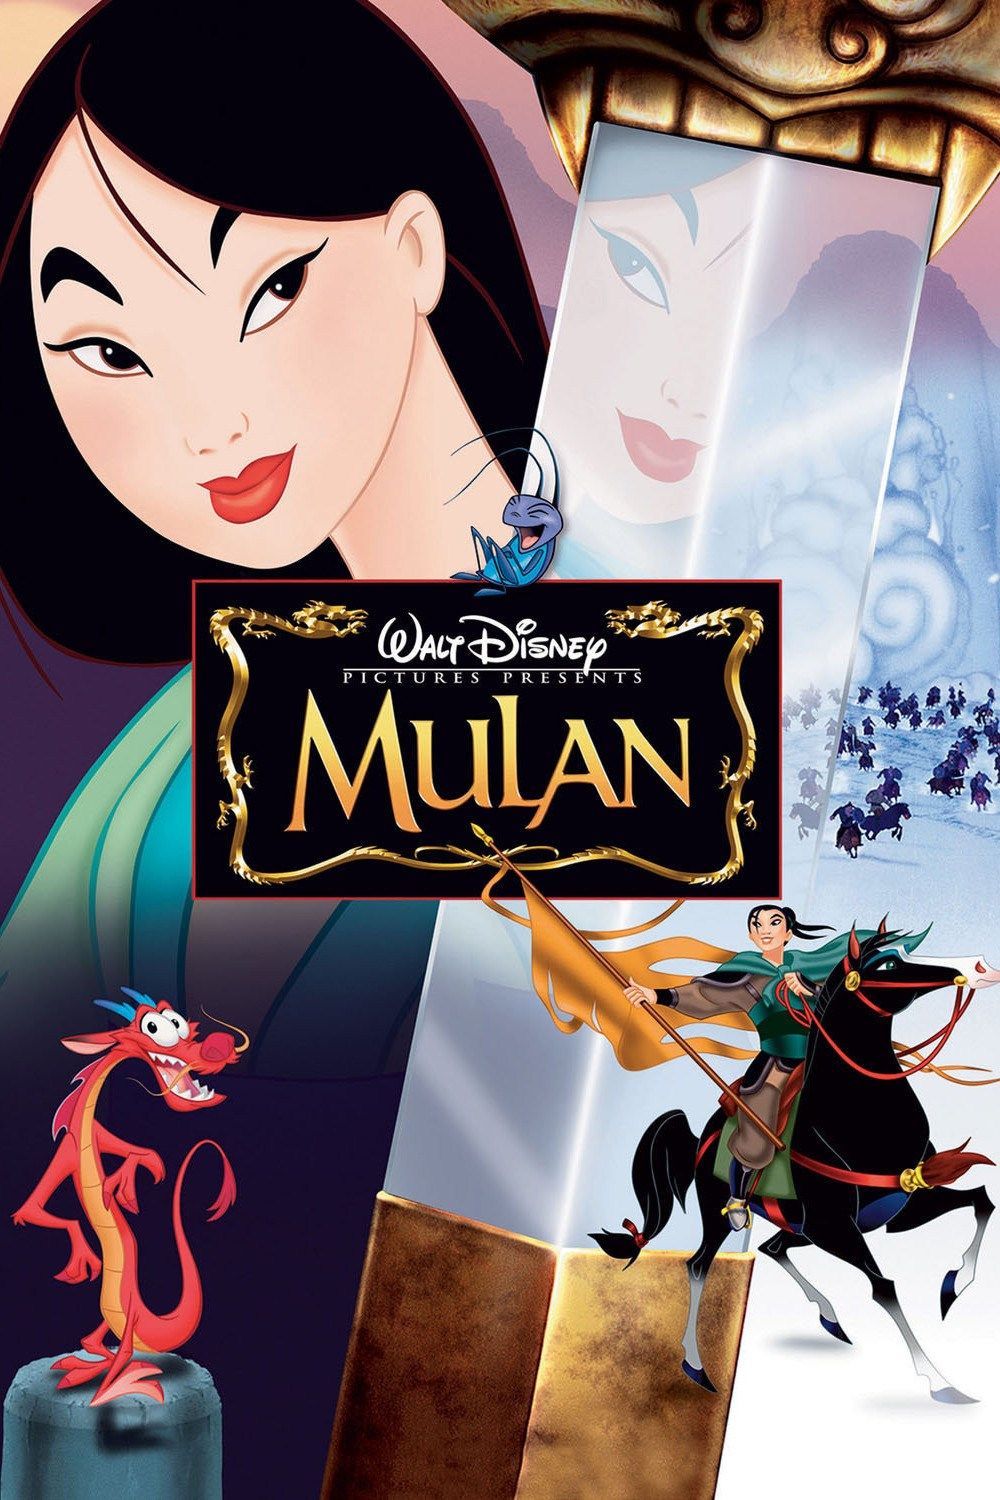 Mulan (1998) Tamil Dubbed Full Movie Watch Online Free | HighQuality